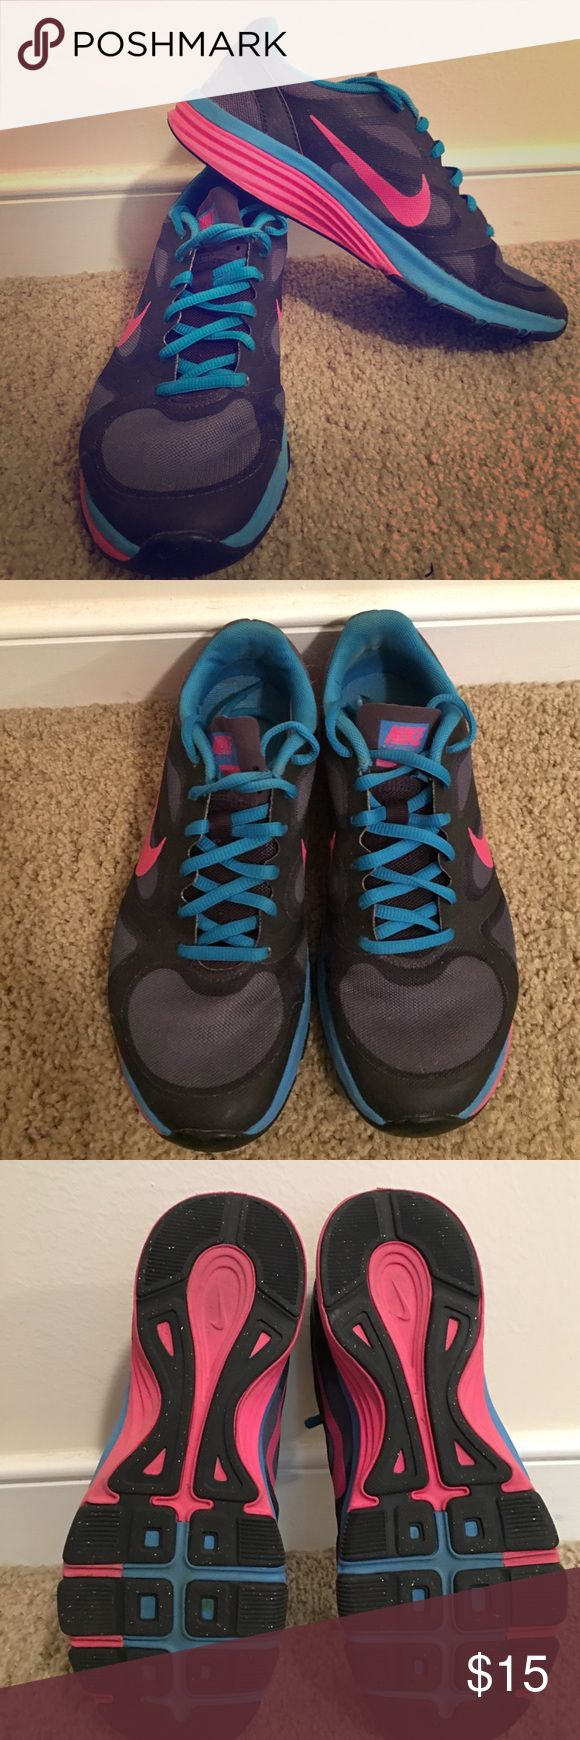 Nike Dual Fusion TR in bright blue and pink Super cute nikes in great condition Nike Shoes Sneakers